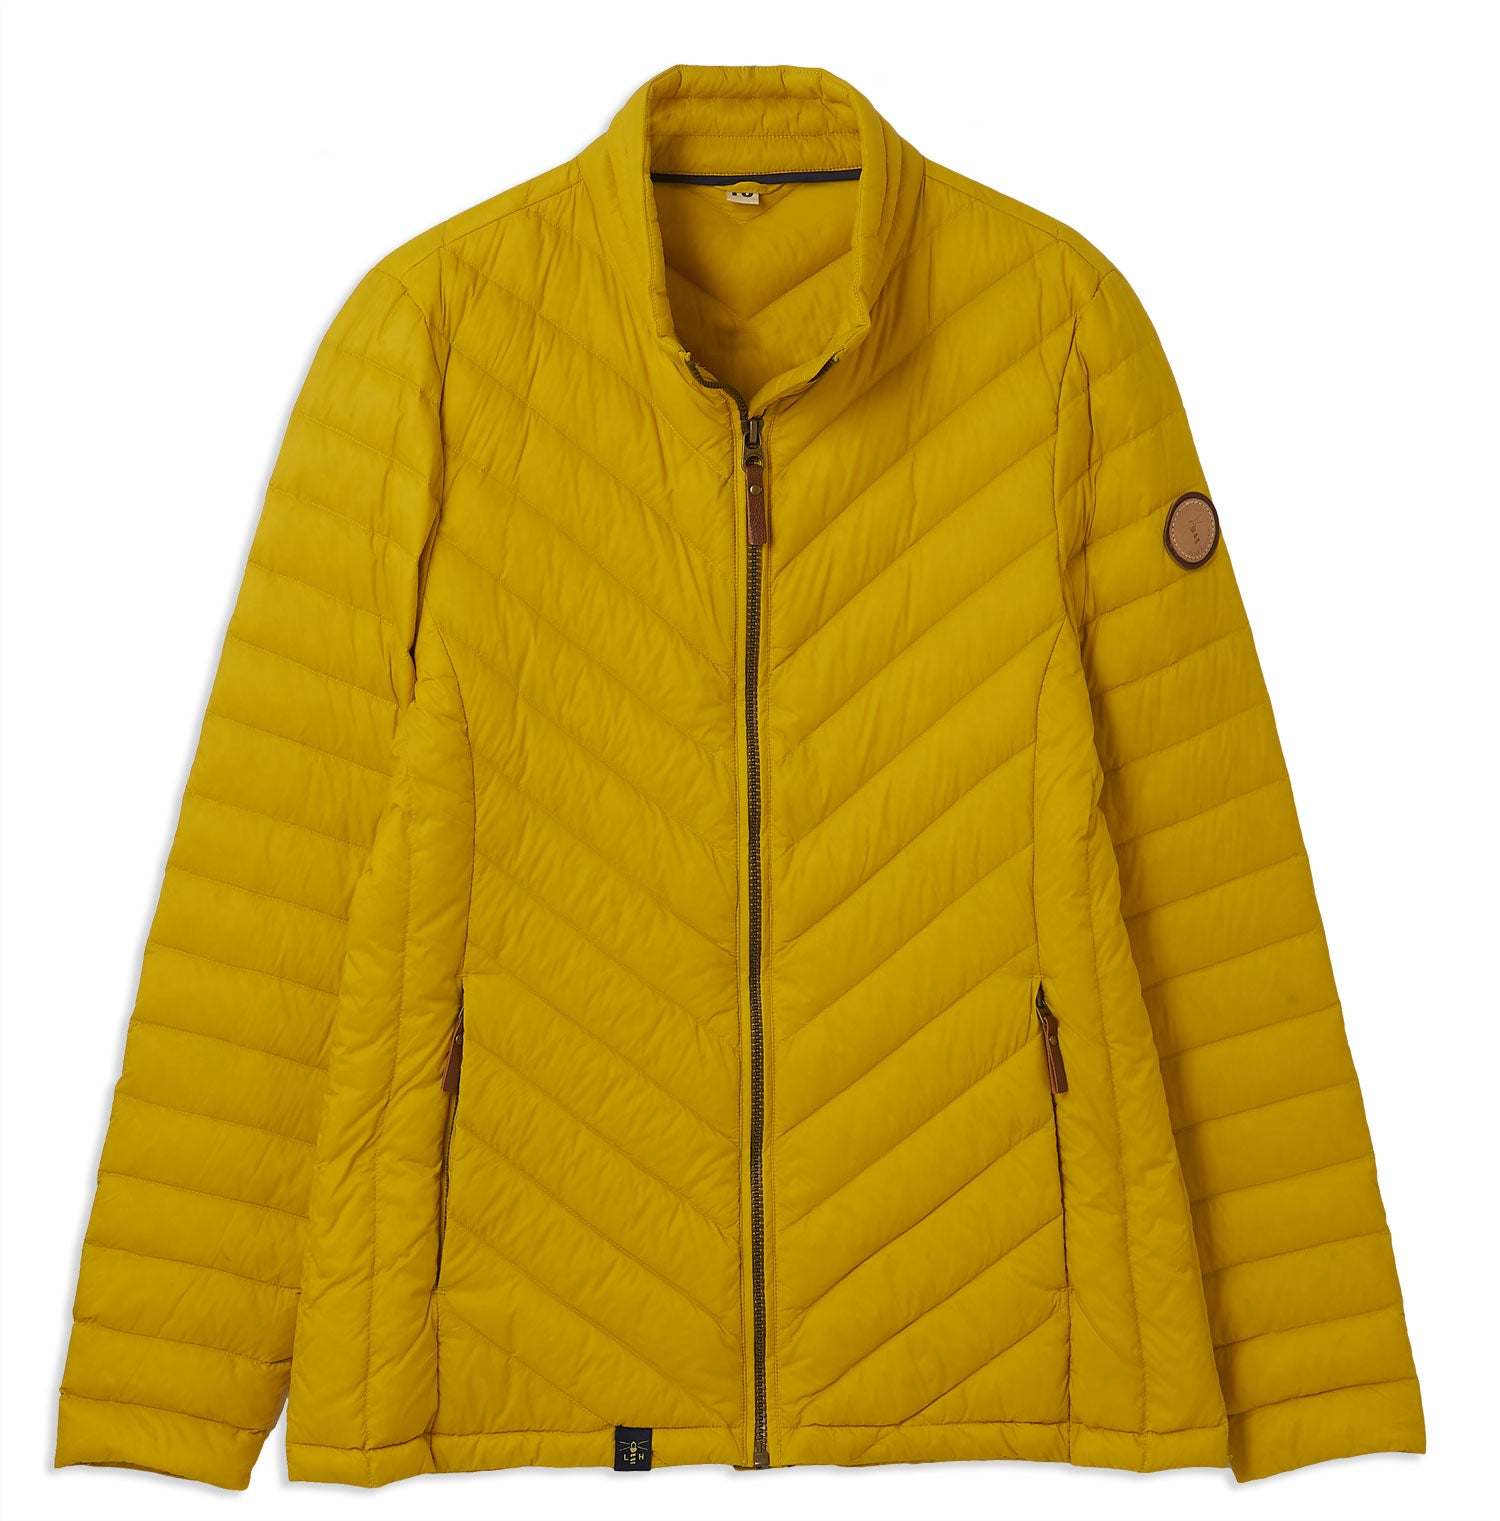 Sunrise Yellow Ladies Lara Quilted Down Jacket by Lighthouse